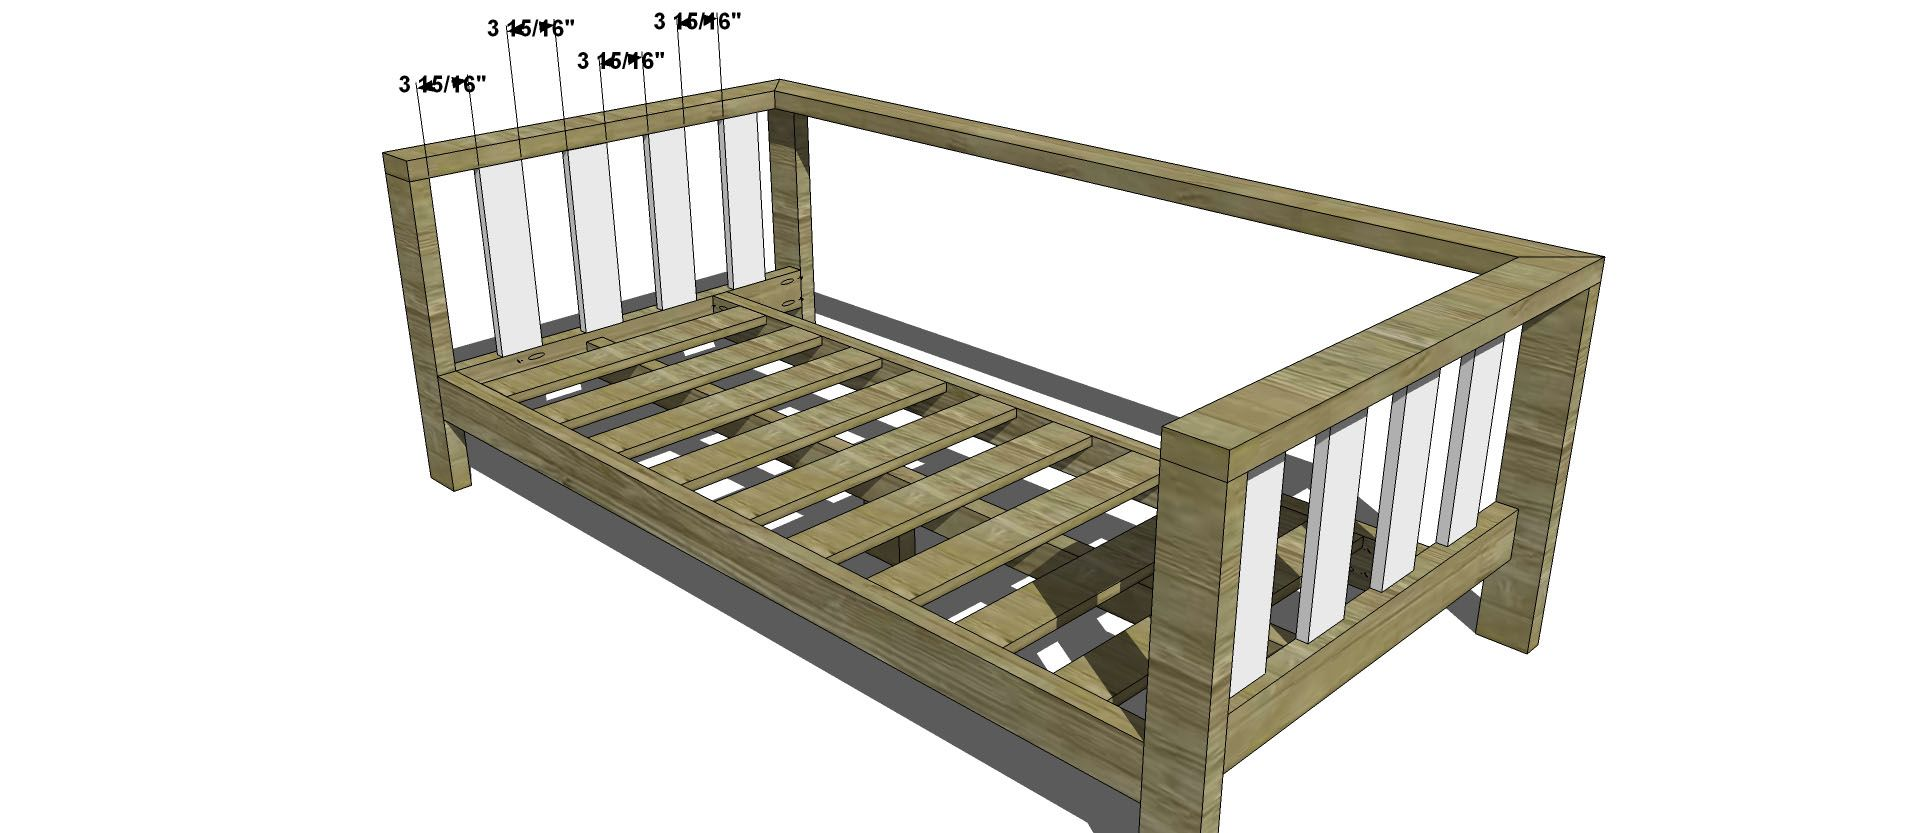 Sofa side slats for free diy furniture plans how to build an outdoor reef sofa with modifications for cushions from target